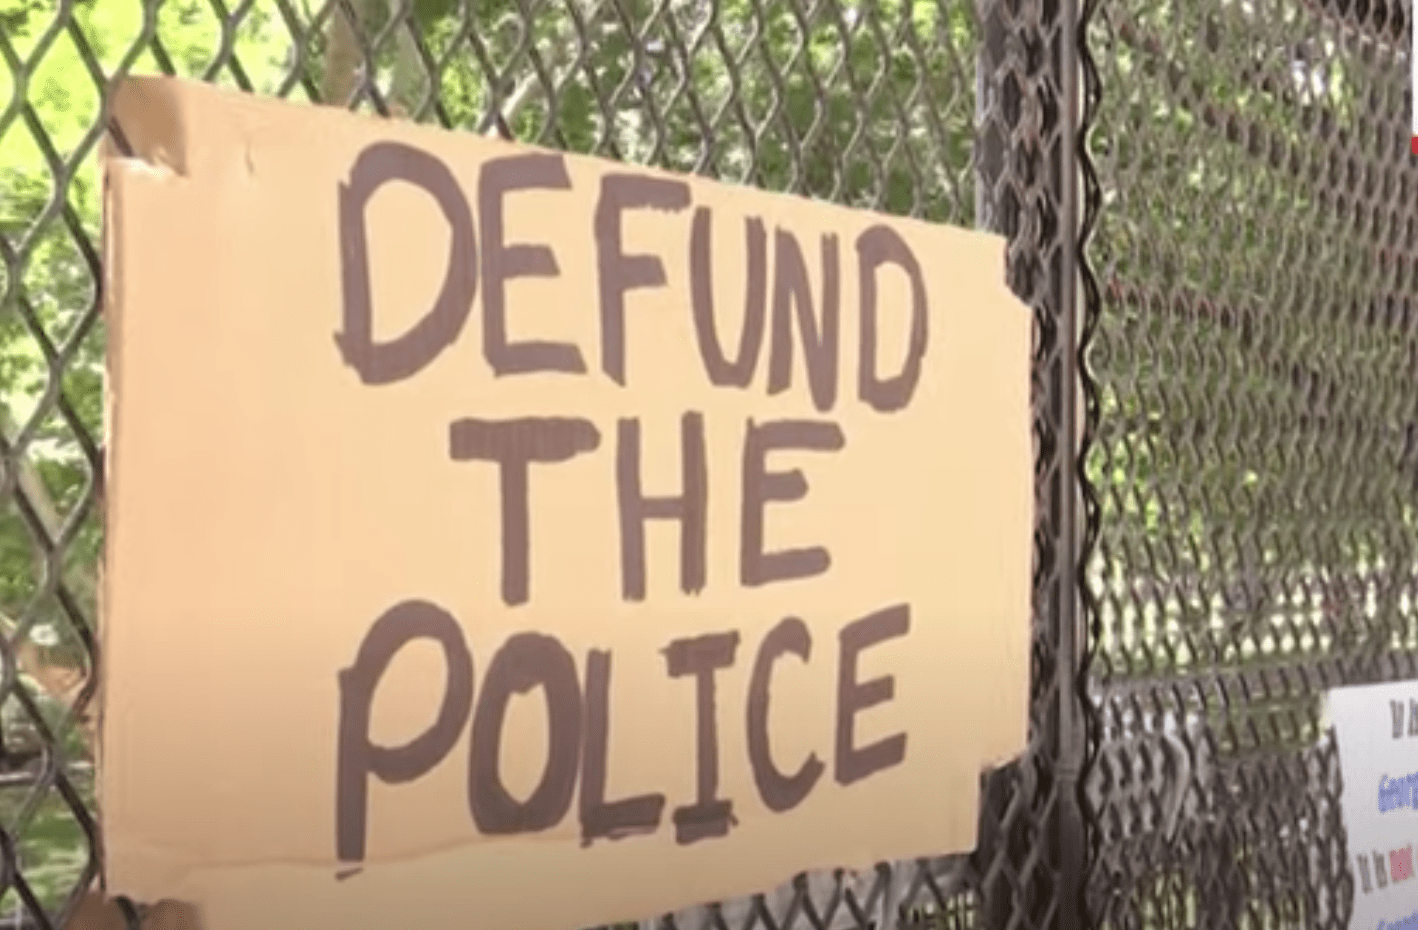 Google employees sign letter, encouraging company to end ties with police: 'Time to defang and defund' cops